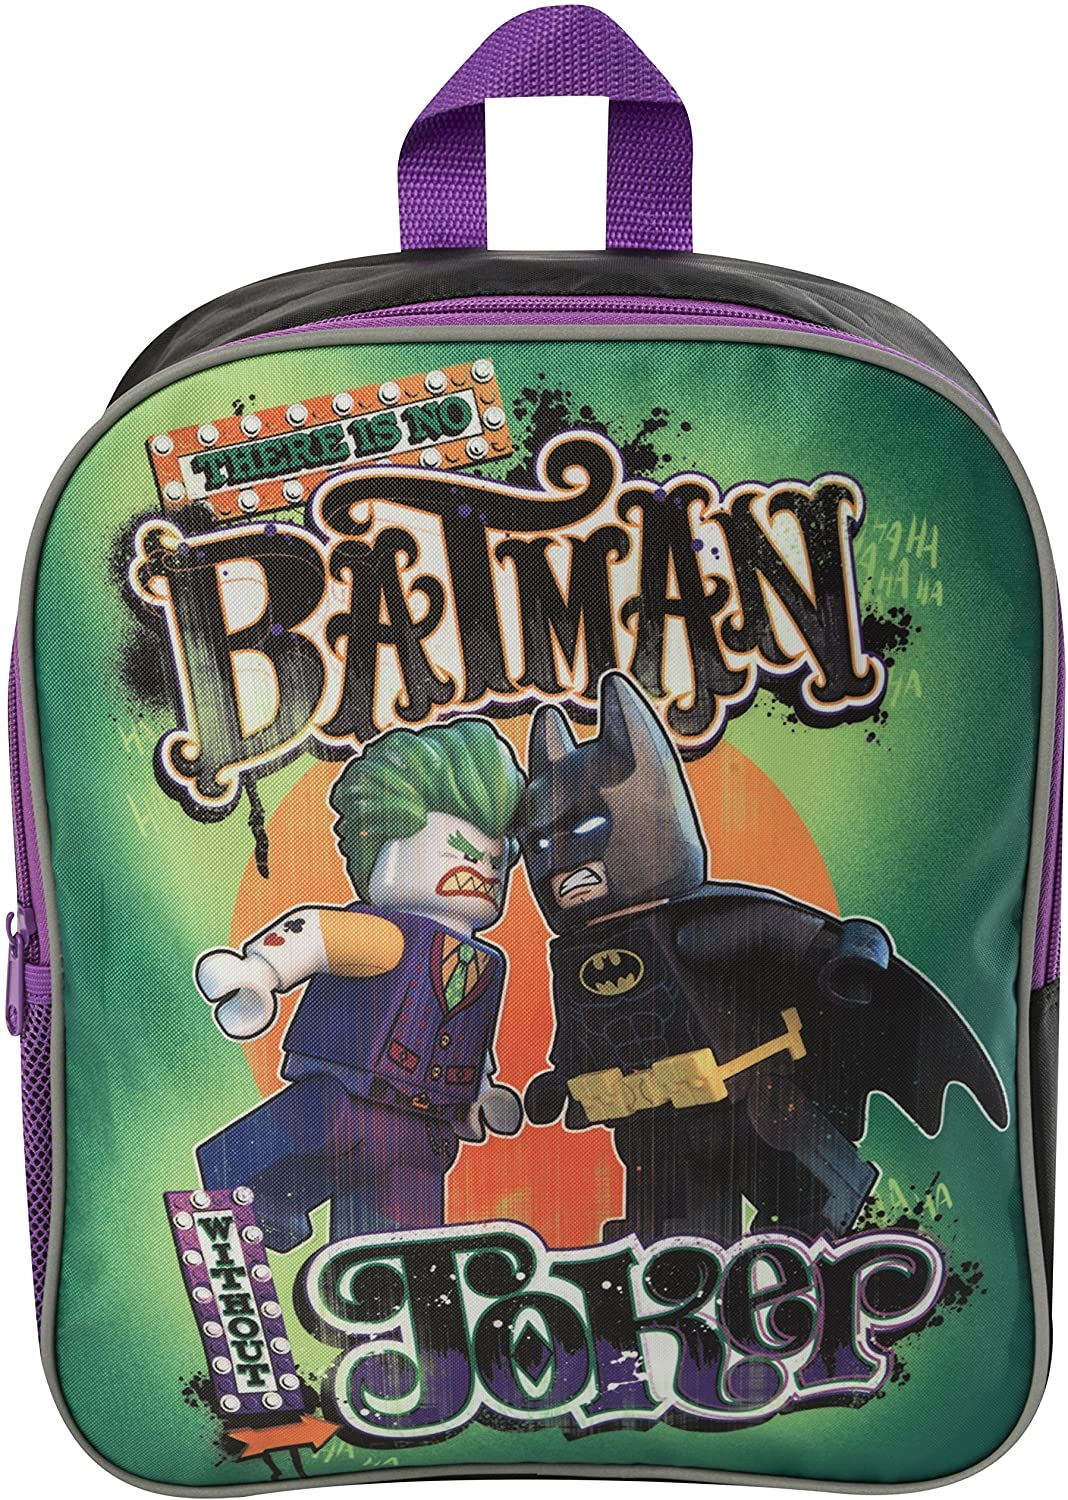 Lego Batman V Lego Joker Backpack